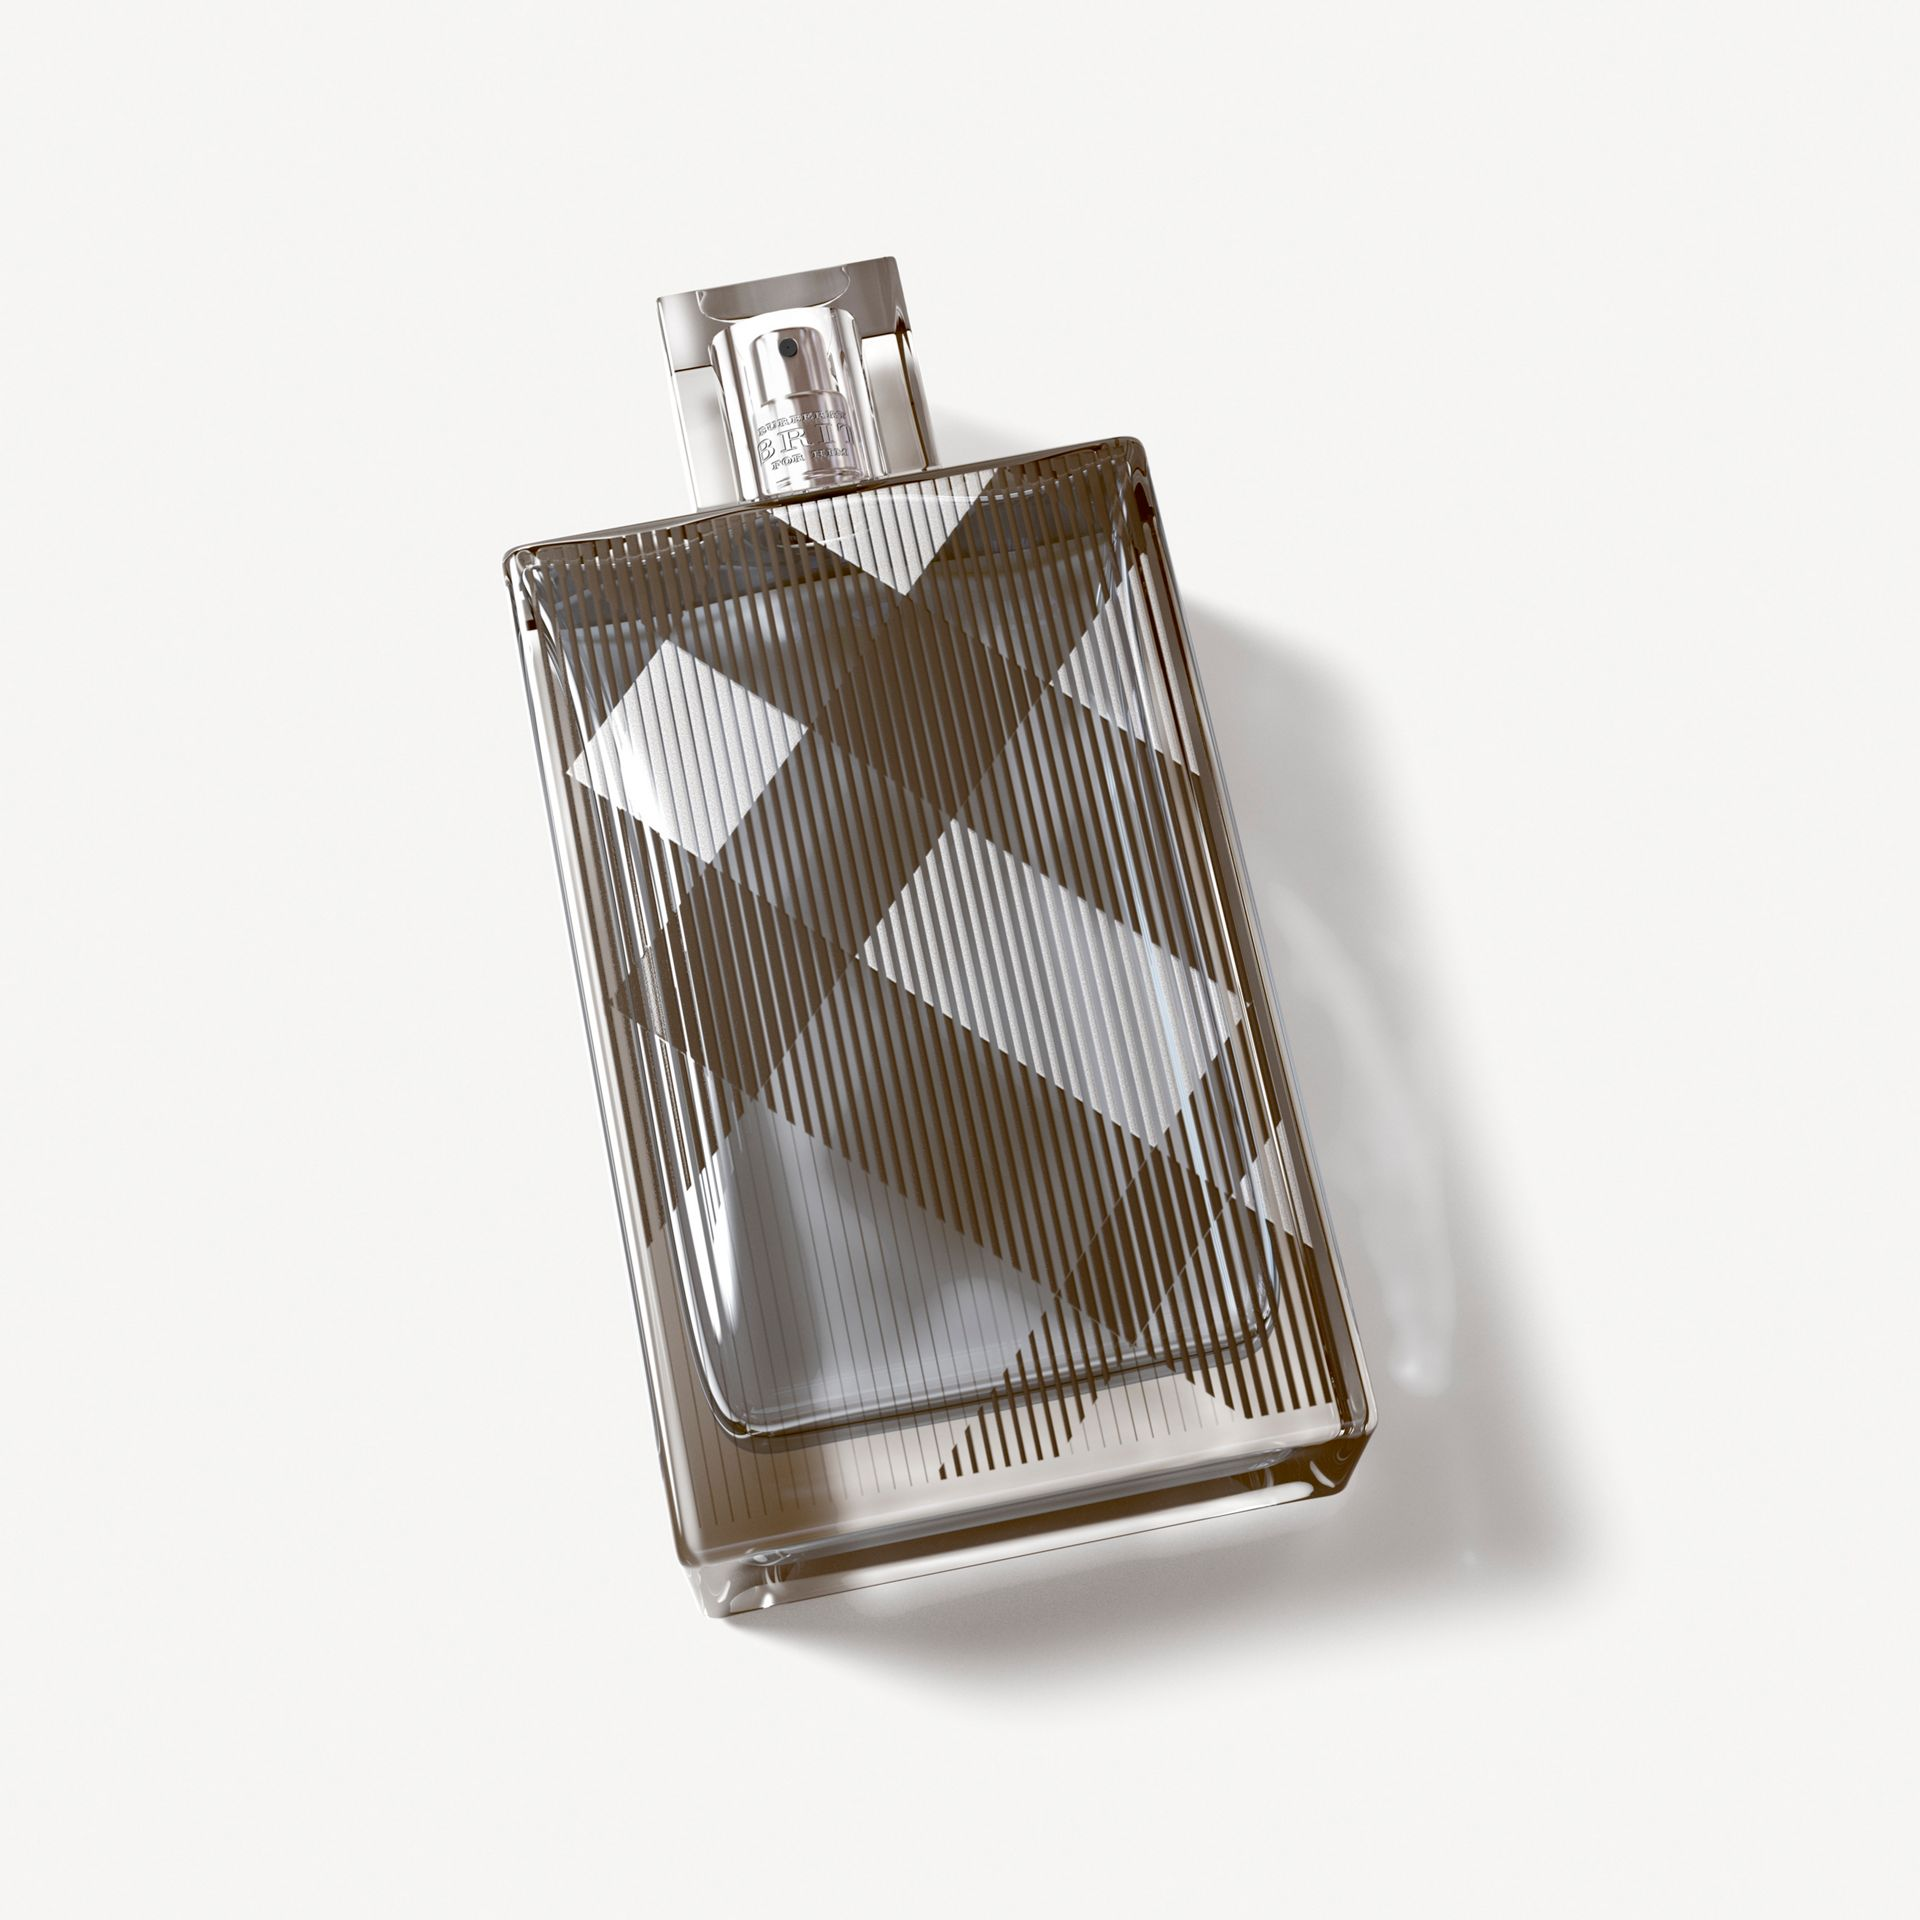 Burberry Brit For Him Eau de Toilette 200ml - gallery image 1